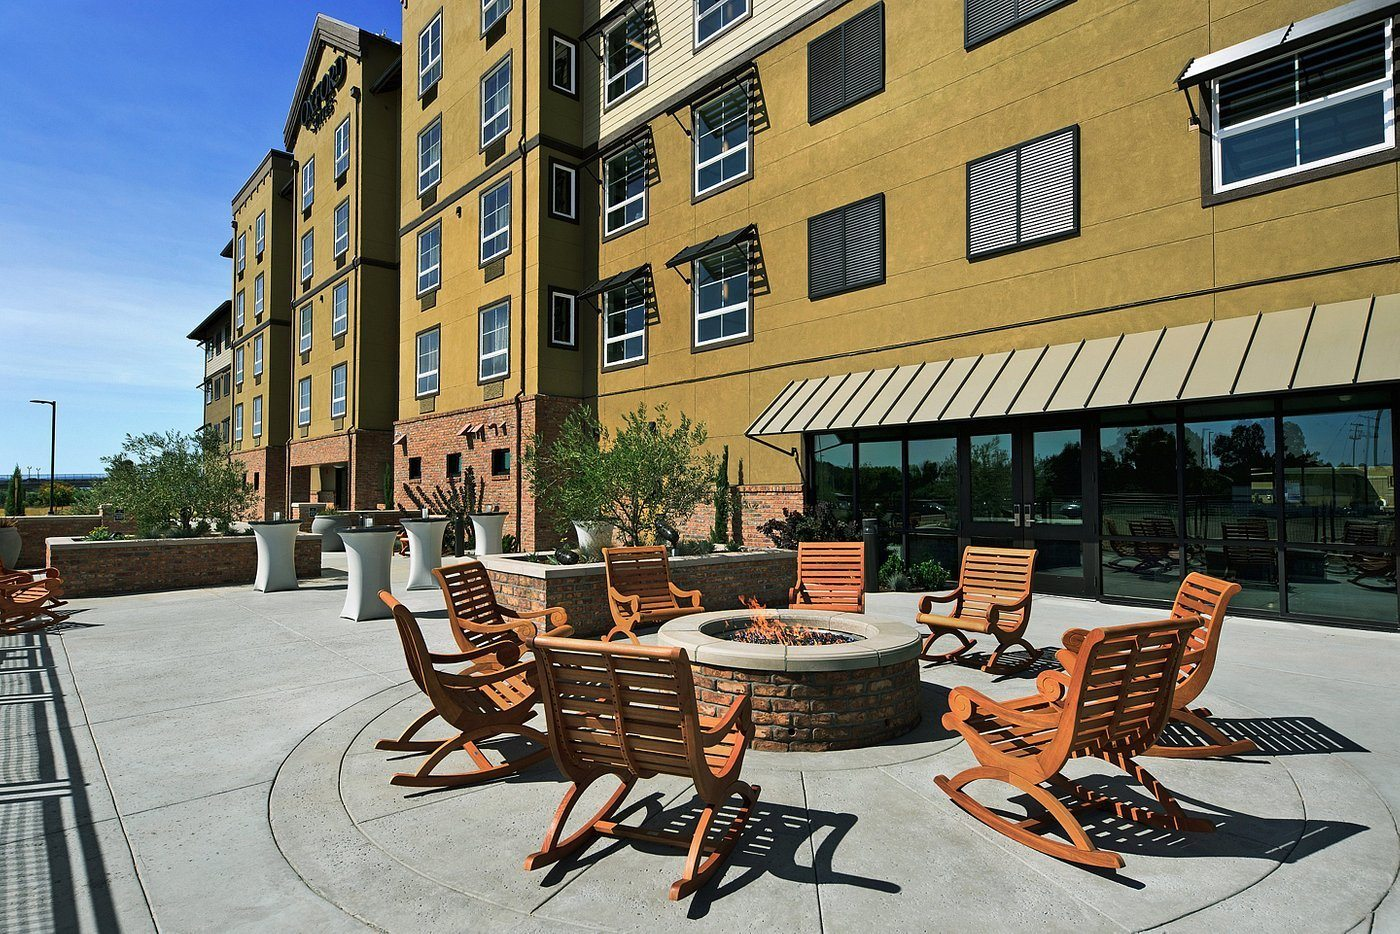 Best Hotels in Paso Robles, by Travel Blogger What The Fab